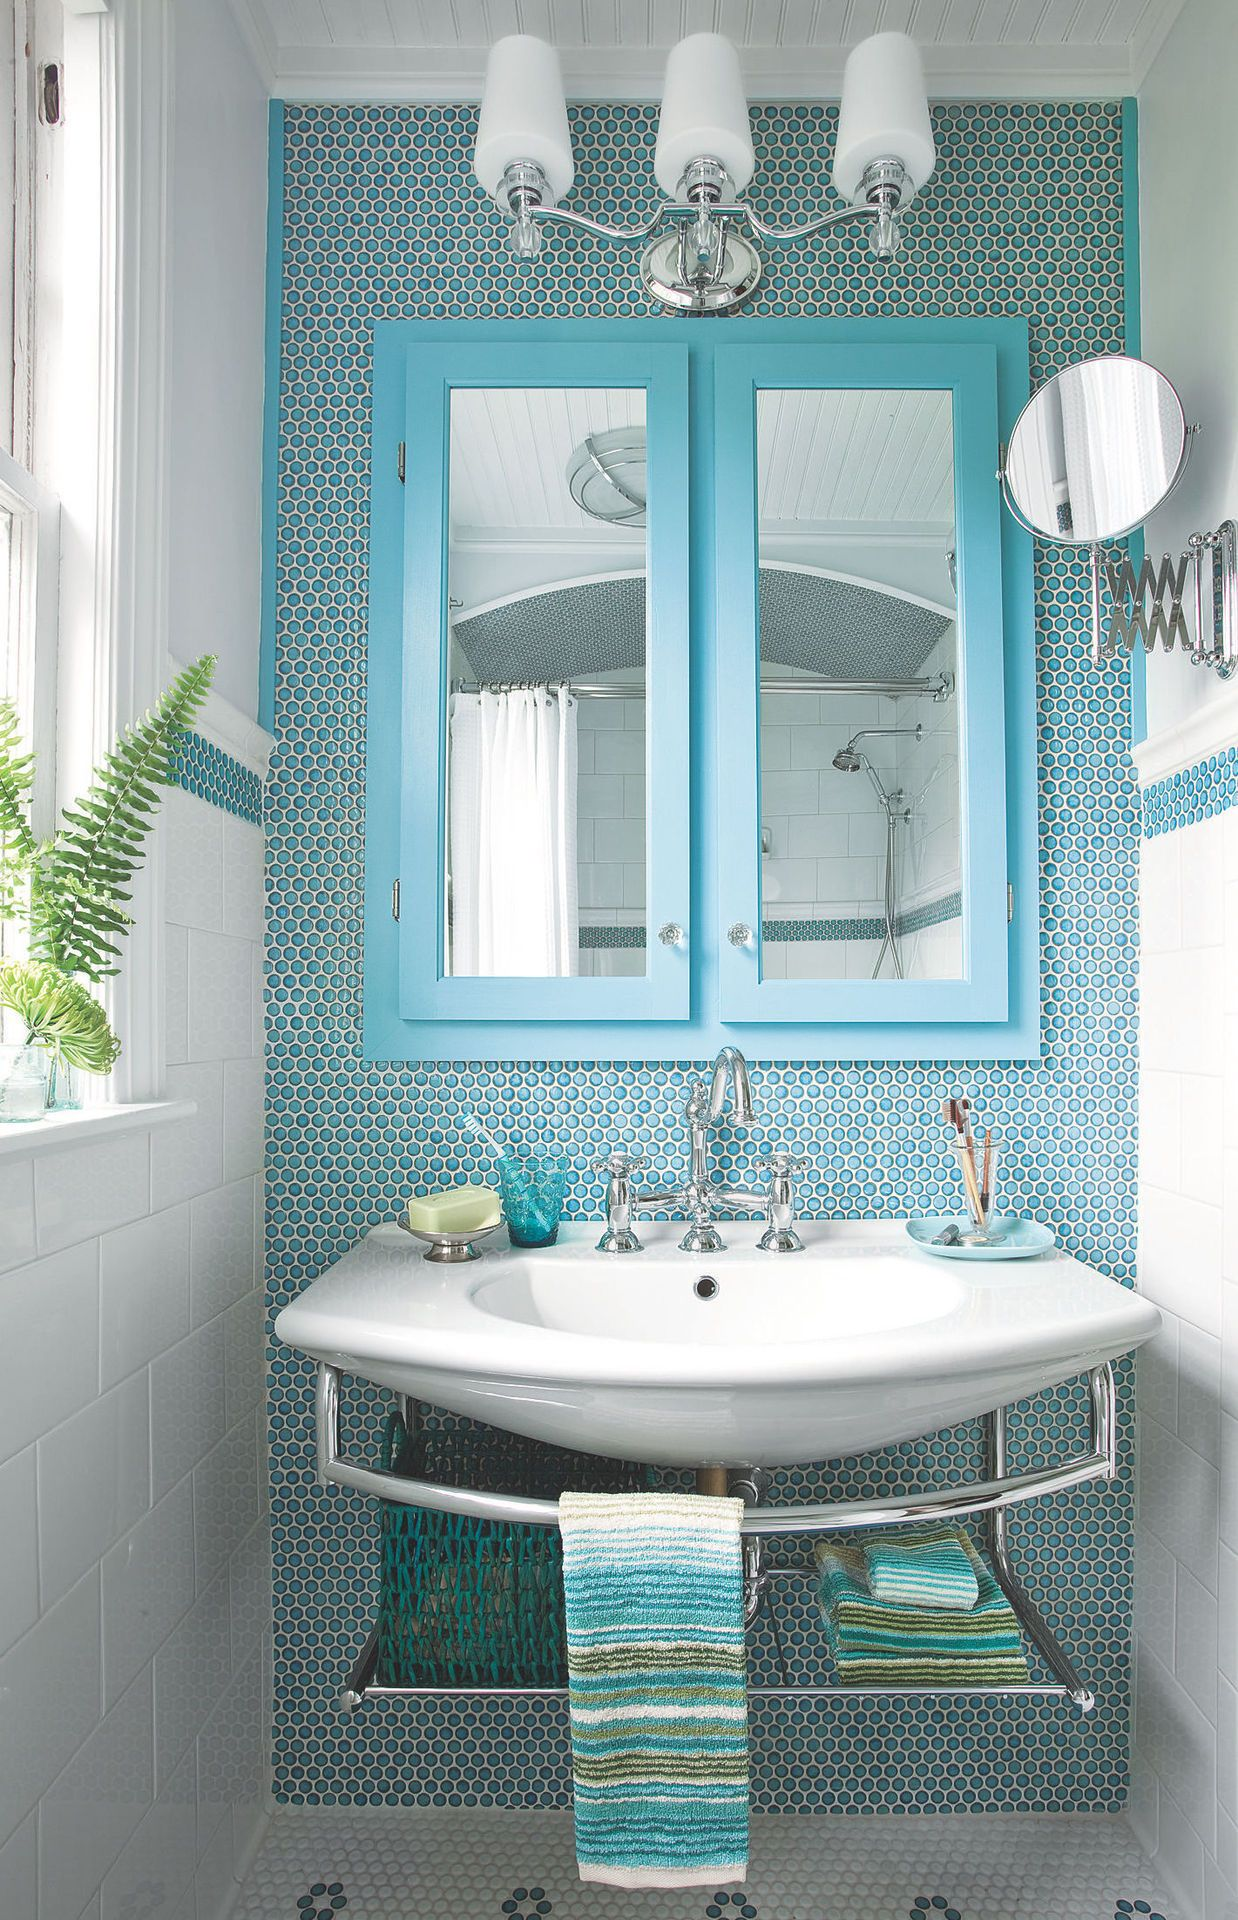 Oceans Of Blue Via Old House Website Photograph By Deborah Whitlaw